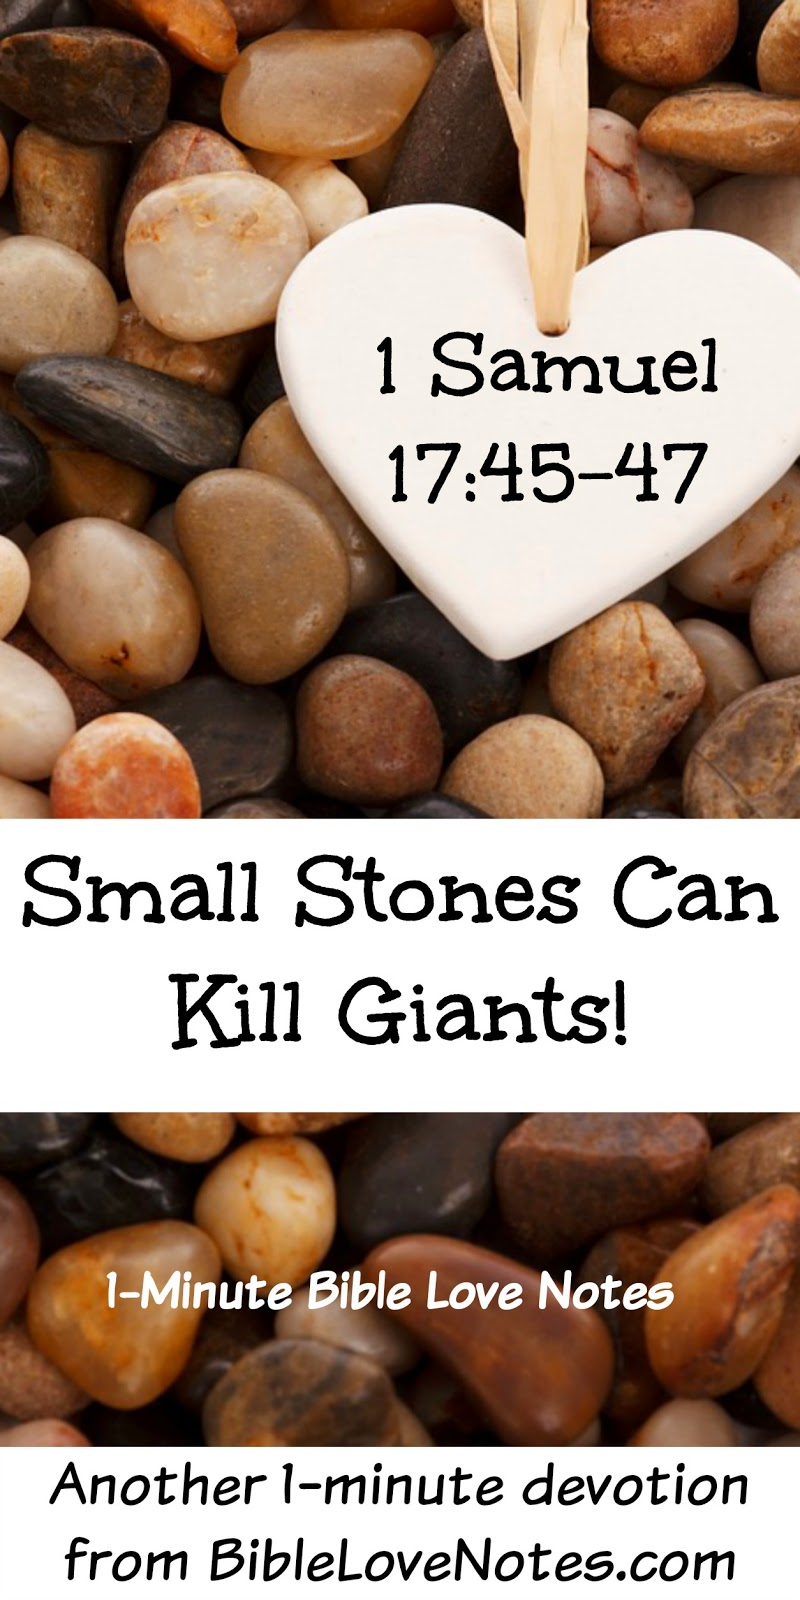 1 Samuel 17:45-47, David slew Goliath, 5 small stones and sling shot